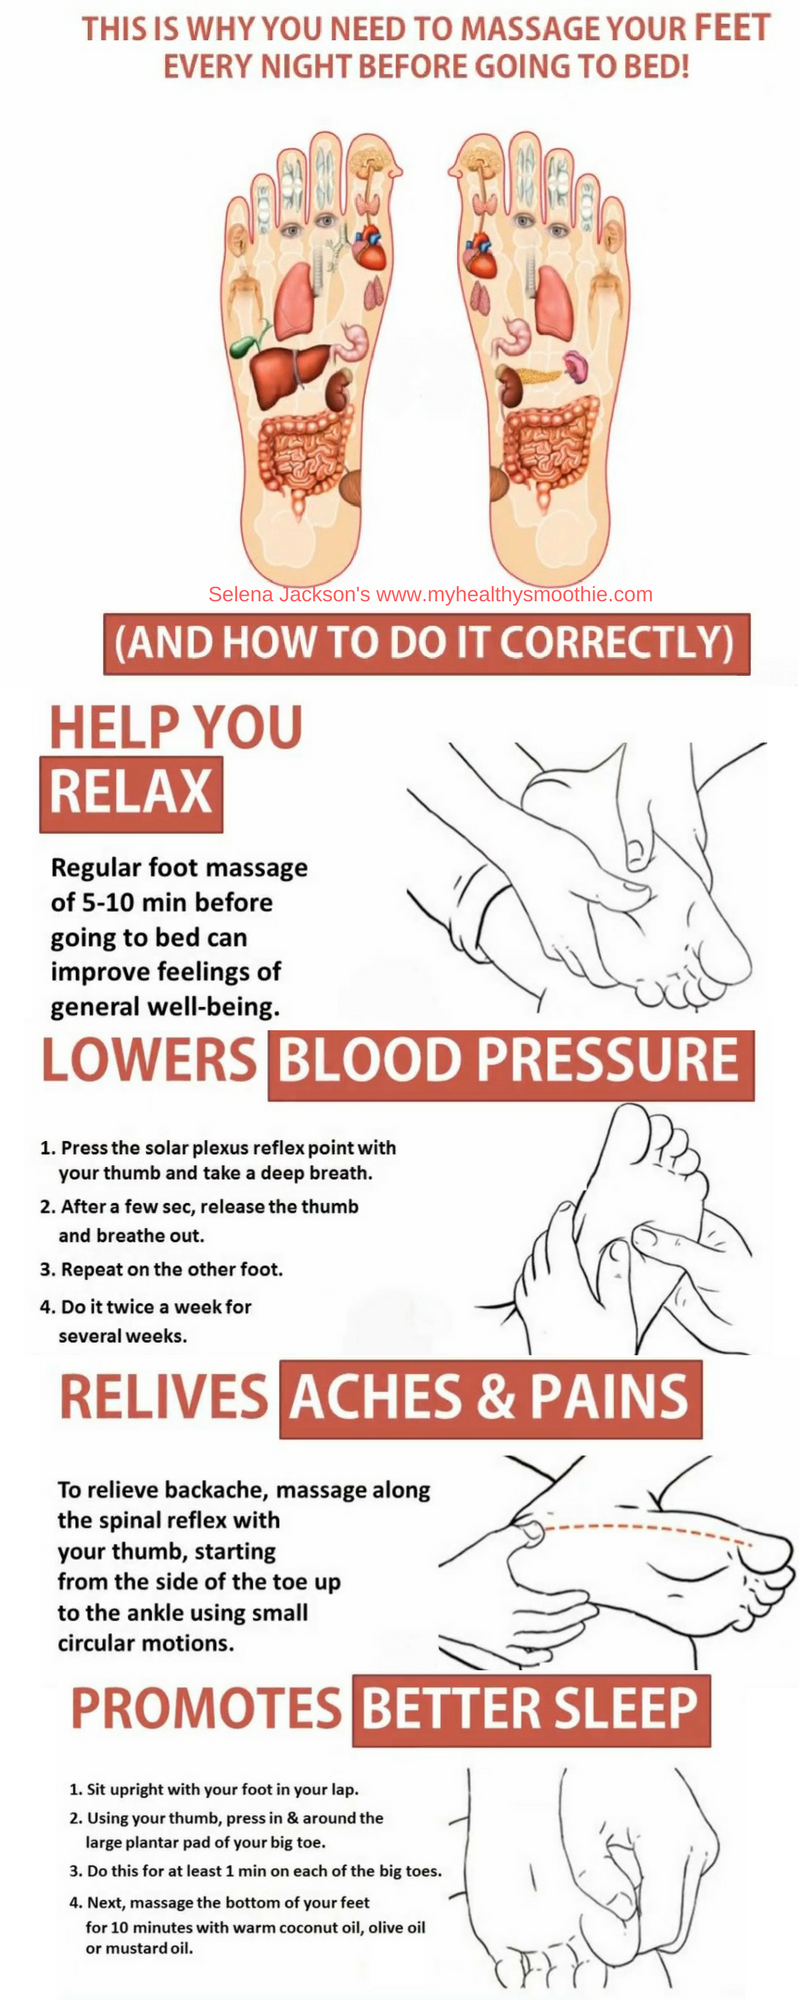 medium resolution of how to massage your feet properly and all the health benefits that come from it massages can help you relax sleep better lower blood pressure